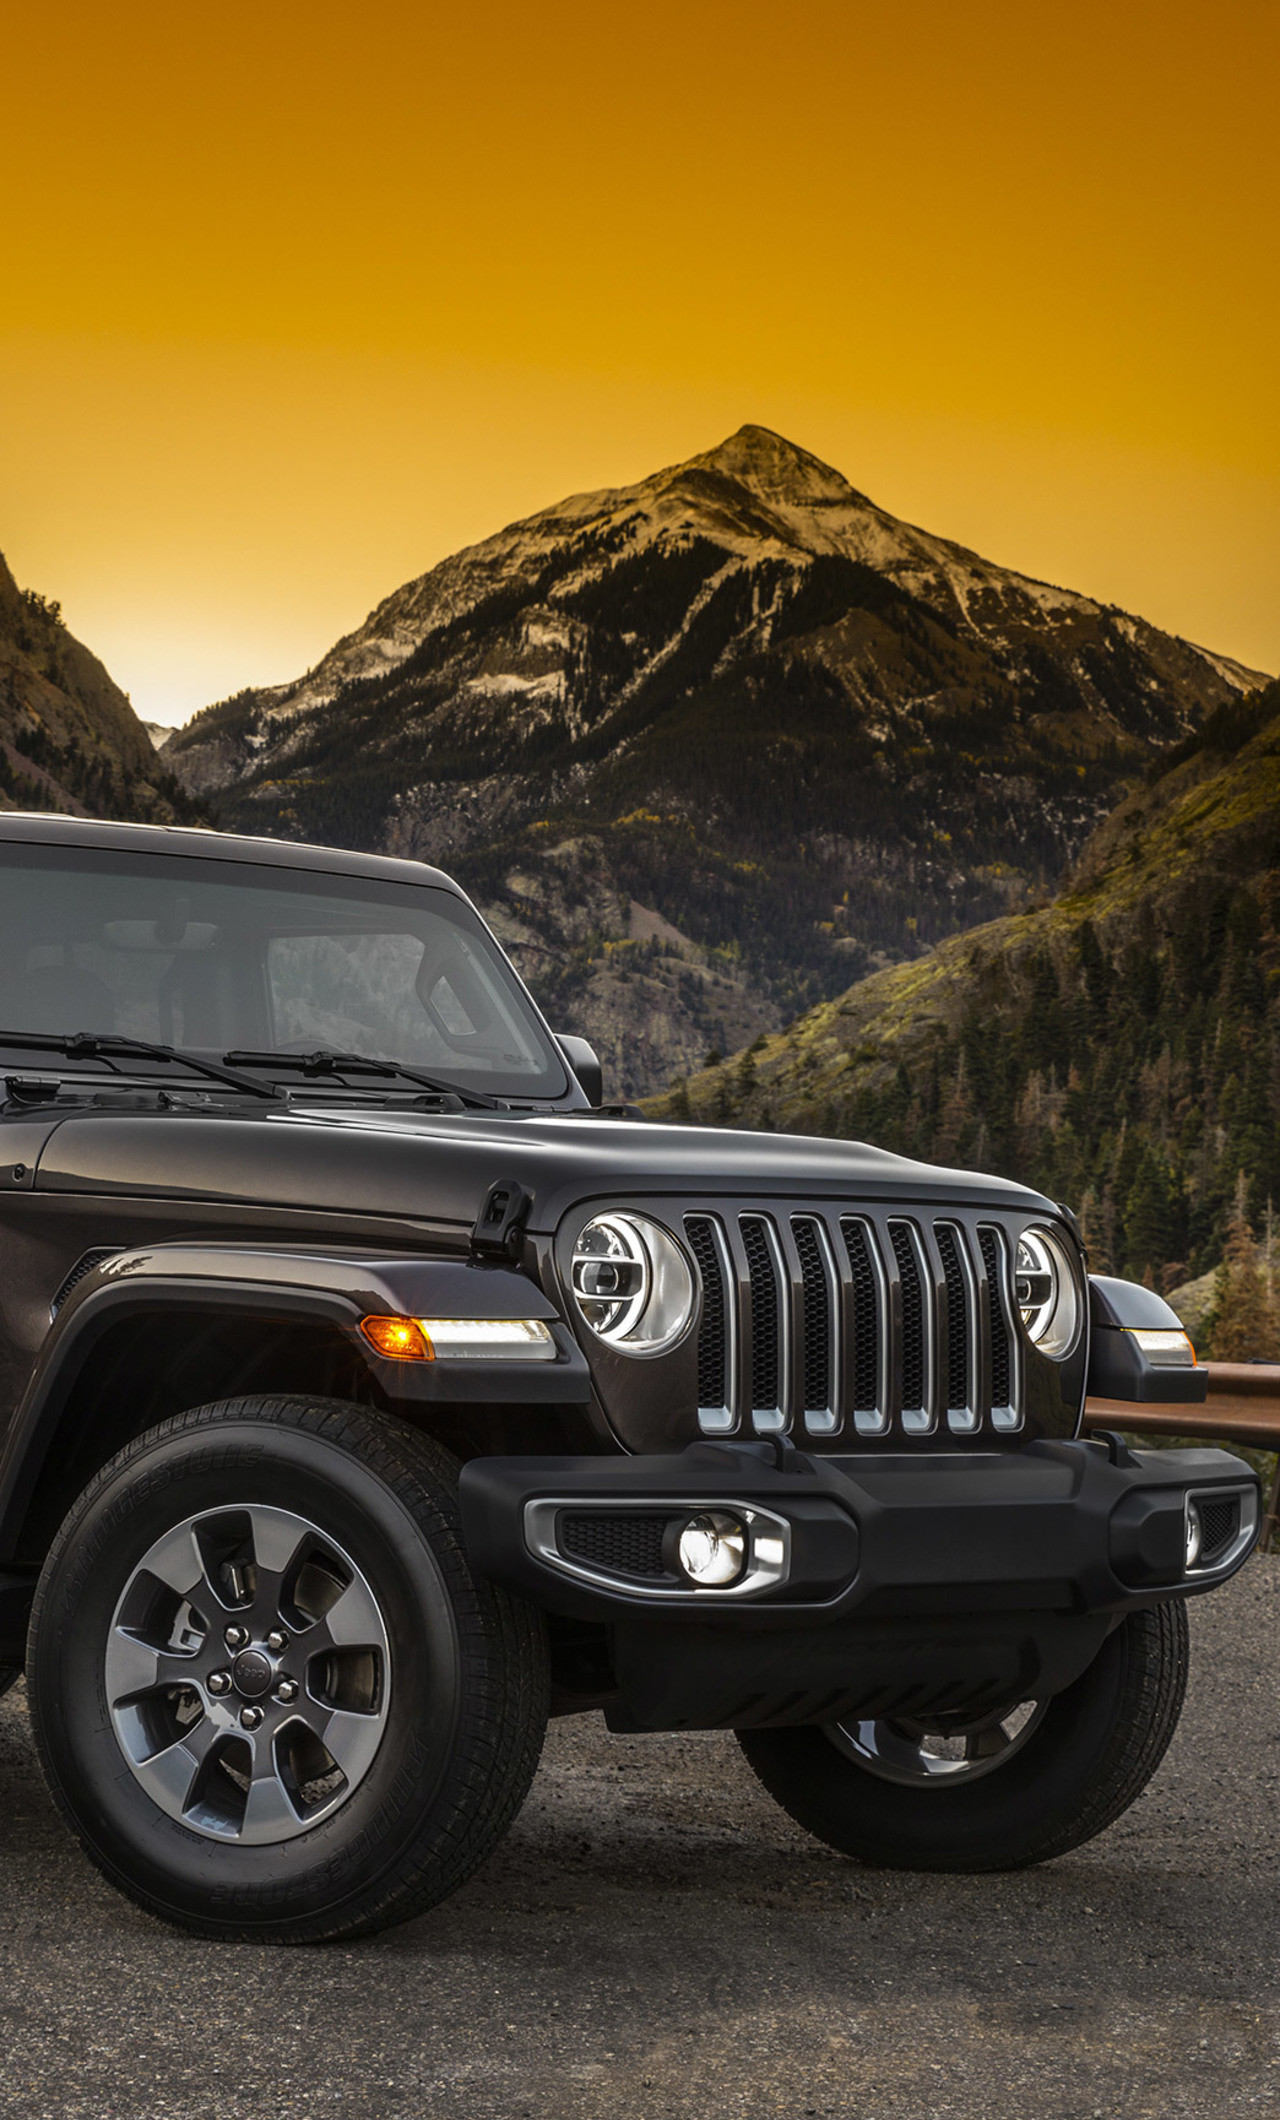 1280x2120, 2018 Jeep Wrangler Unlimited Rubicon Eb - Jeep Wrangler Wallpaper Iphone , HD Wallpaper & Backgrounds